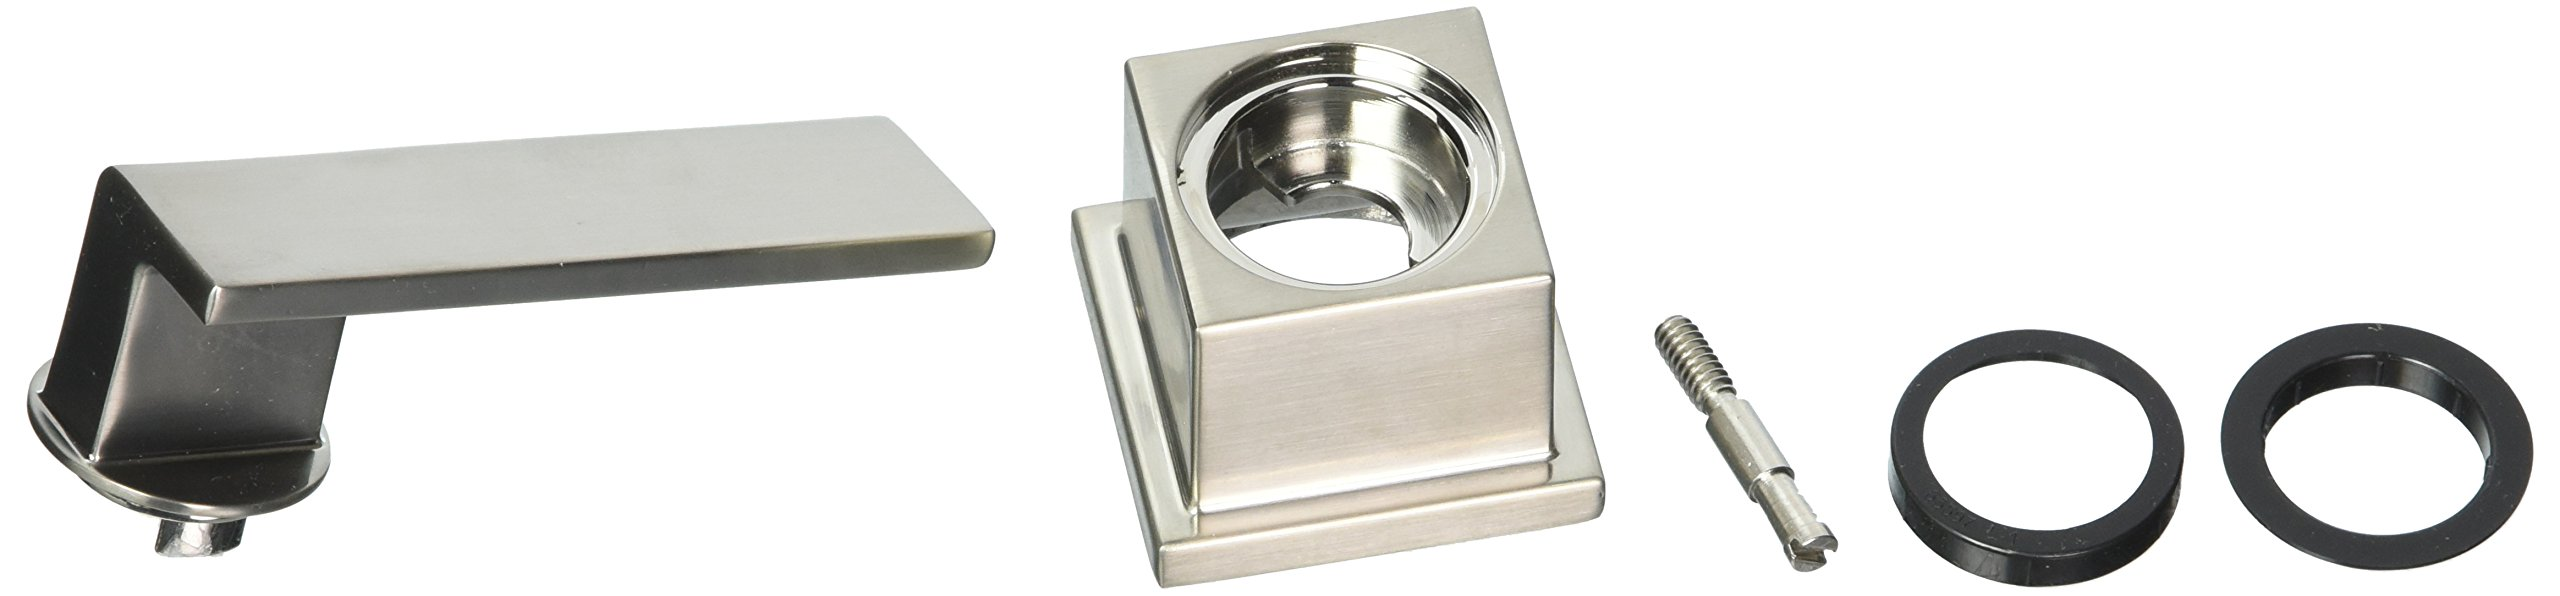 Delta RP63350SS Vero Lever Handle Assembly, Cold, Stainless